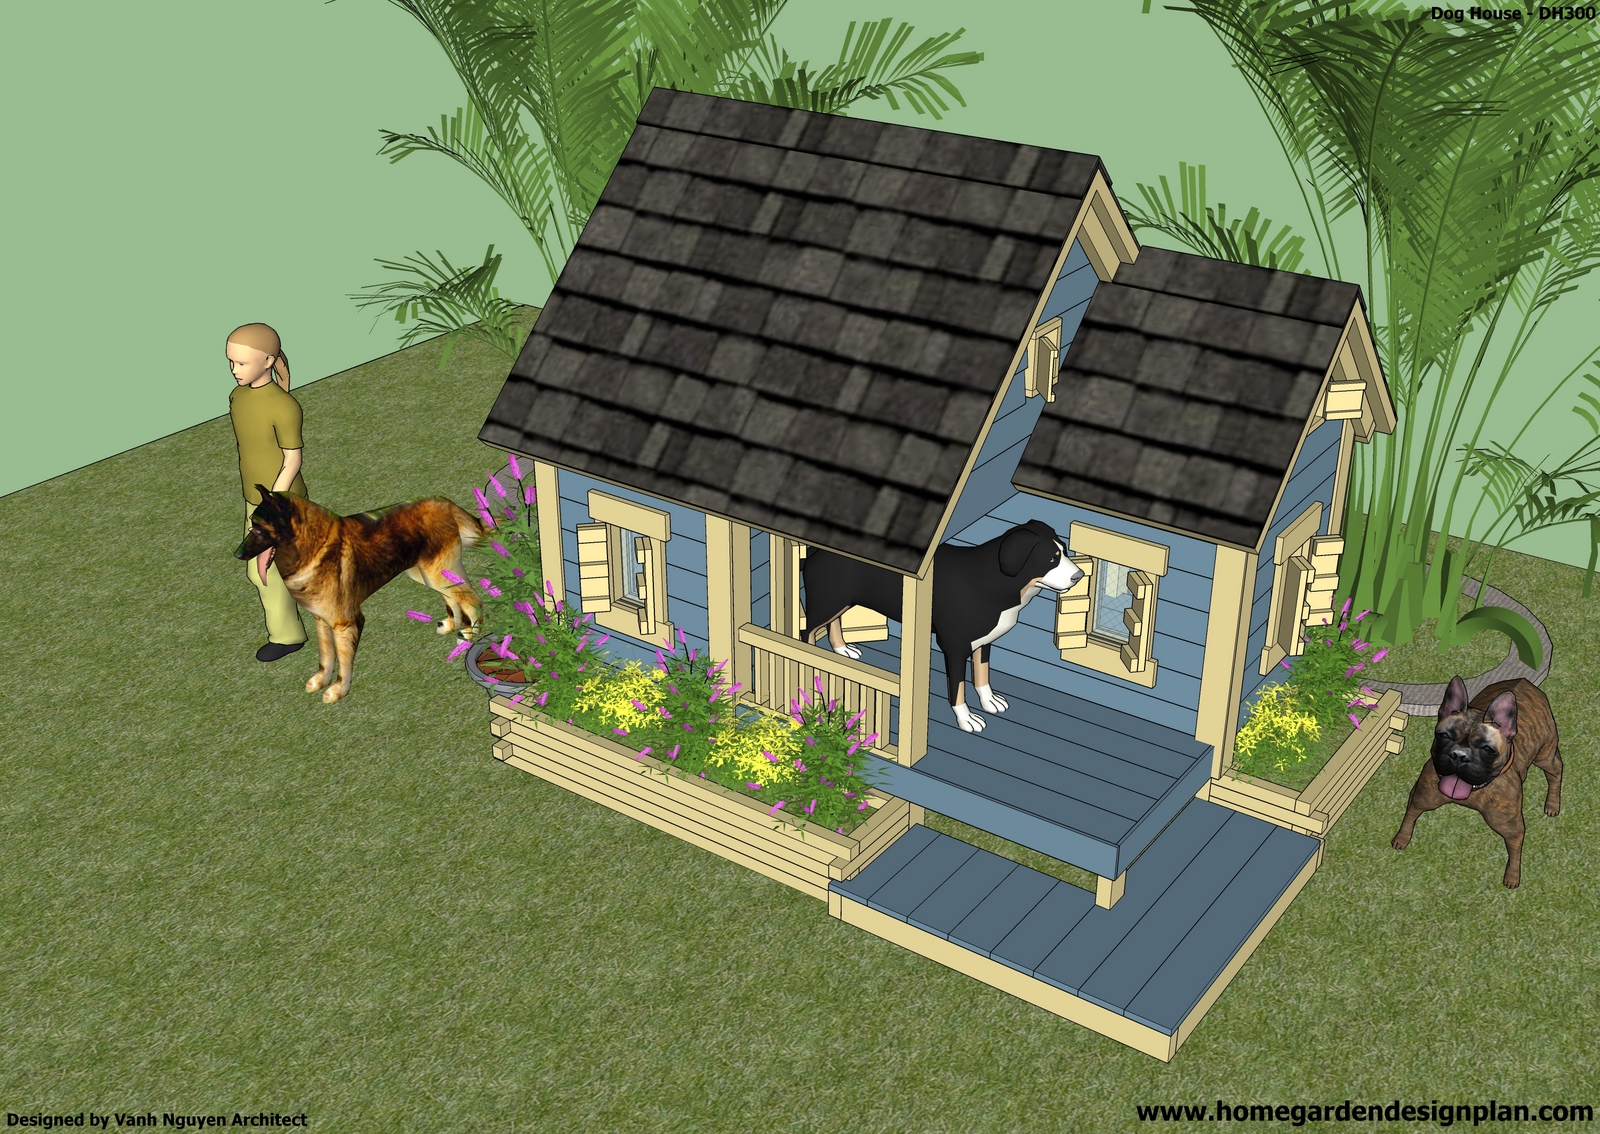 build a dog house Pet parents who want to accommodate this craving for security of their dogs may be interested in knowing how to build a dog house as their next diy project.